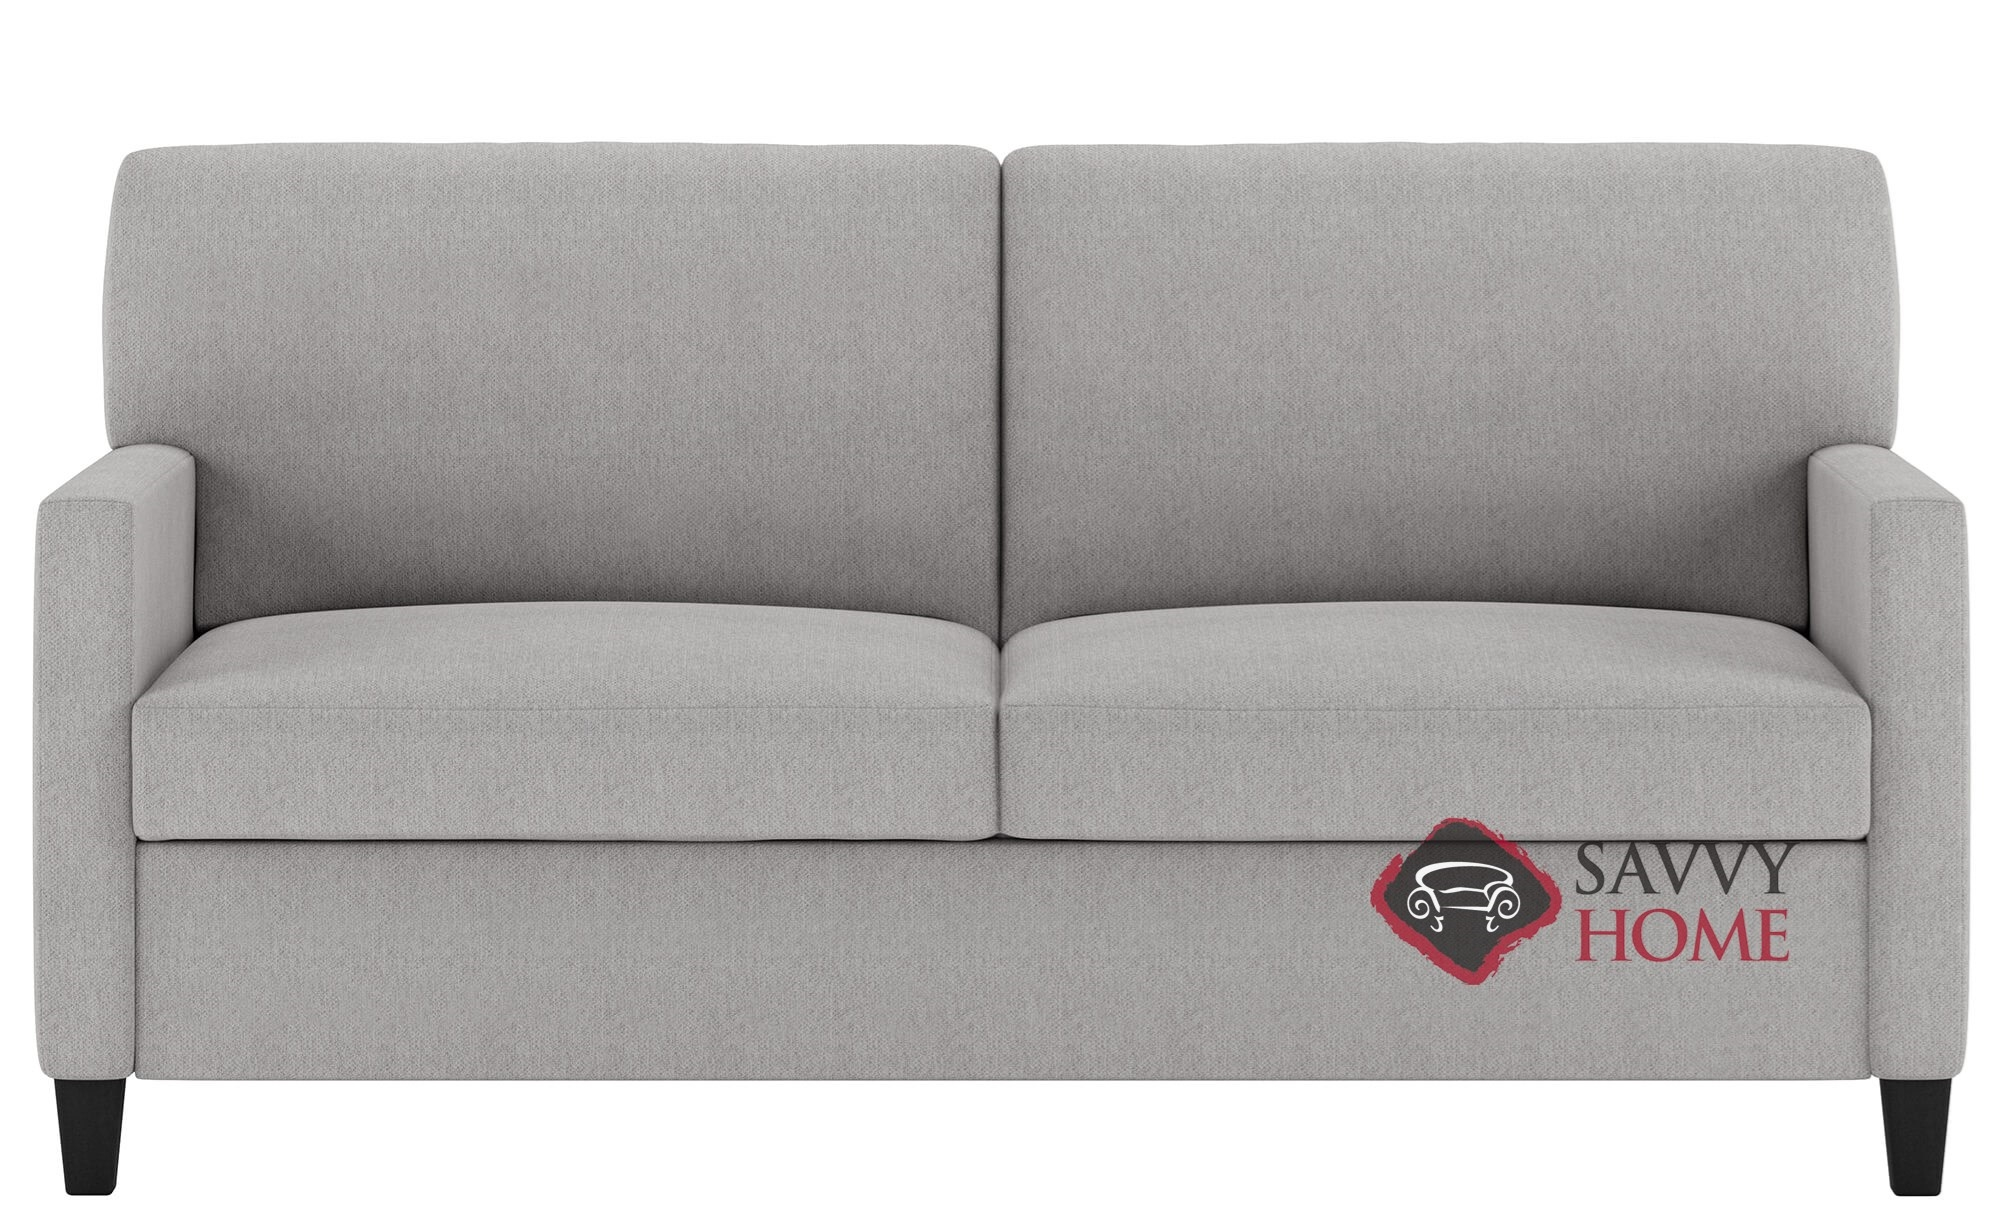 American Sofa Images Conley High Leg Queen Comfort Sleeper By American Leather Generation Viii